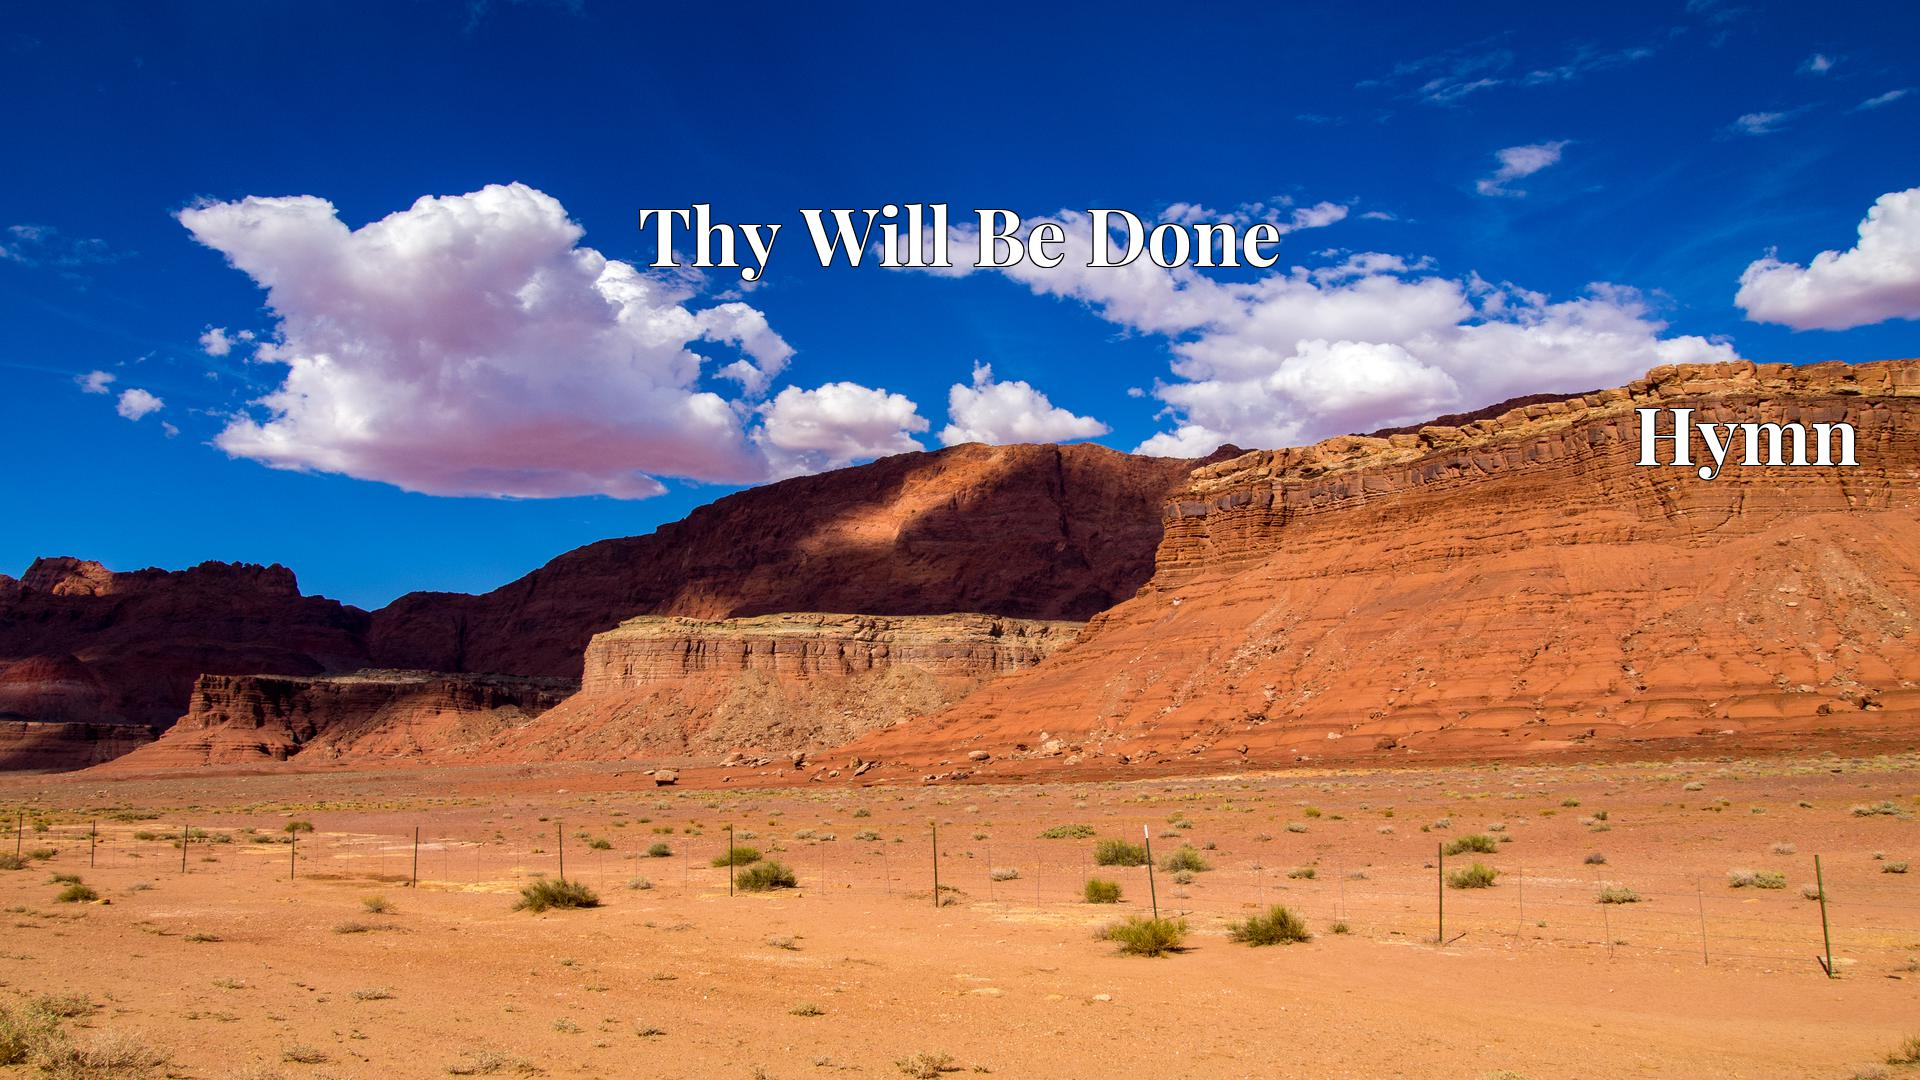 Thy Will Be Done Hymn